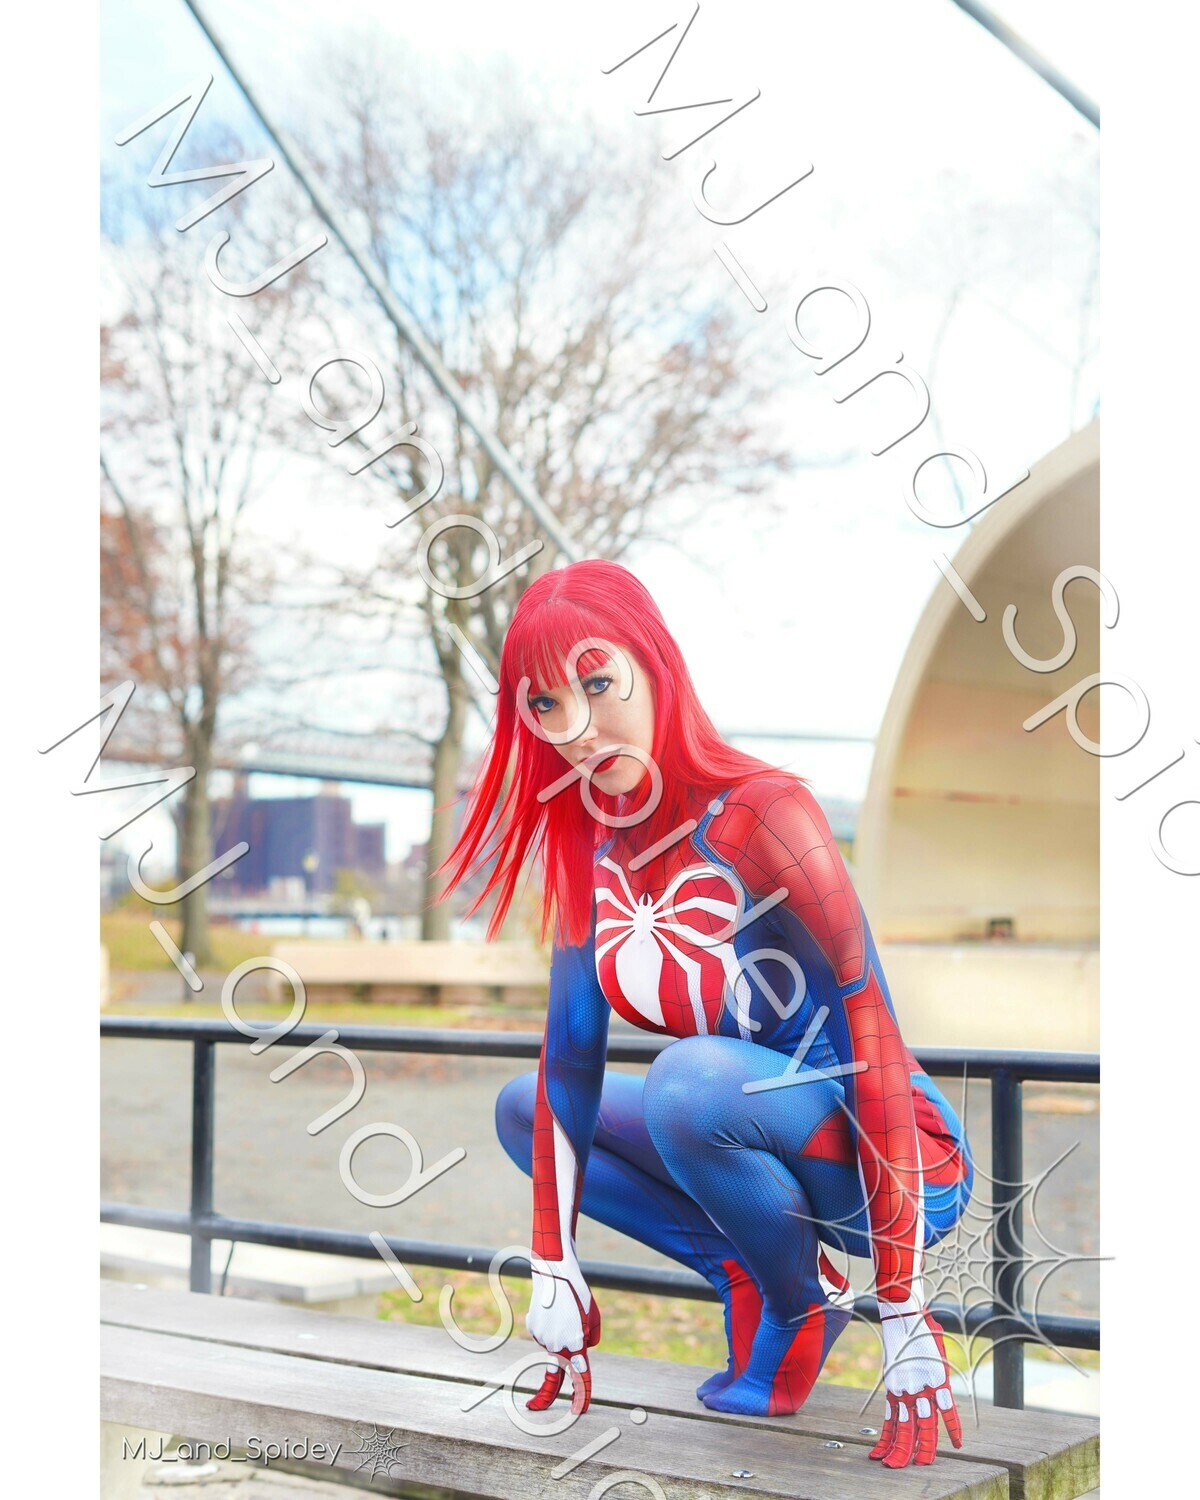 Marvel - Spider-Man - Mary Jane Watson - PS4 Insomniac Spider-Suit No. 5 - 8x10 Cosplay Print (@MJ_and_Spidey, MJ and Spidey, Comics)